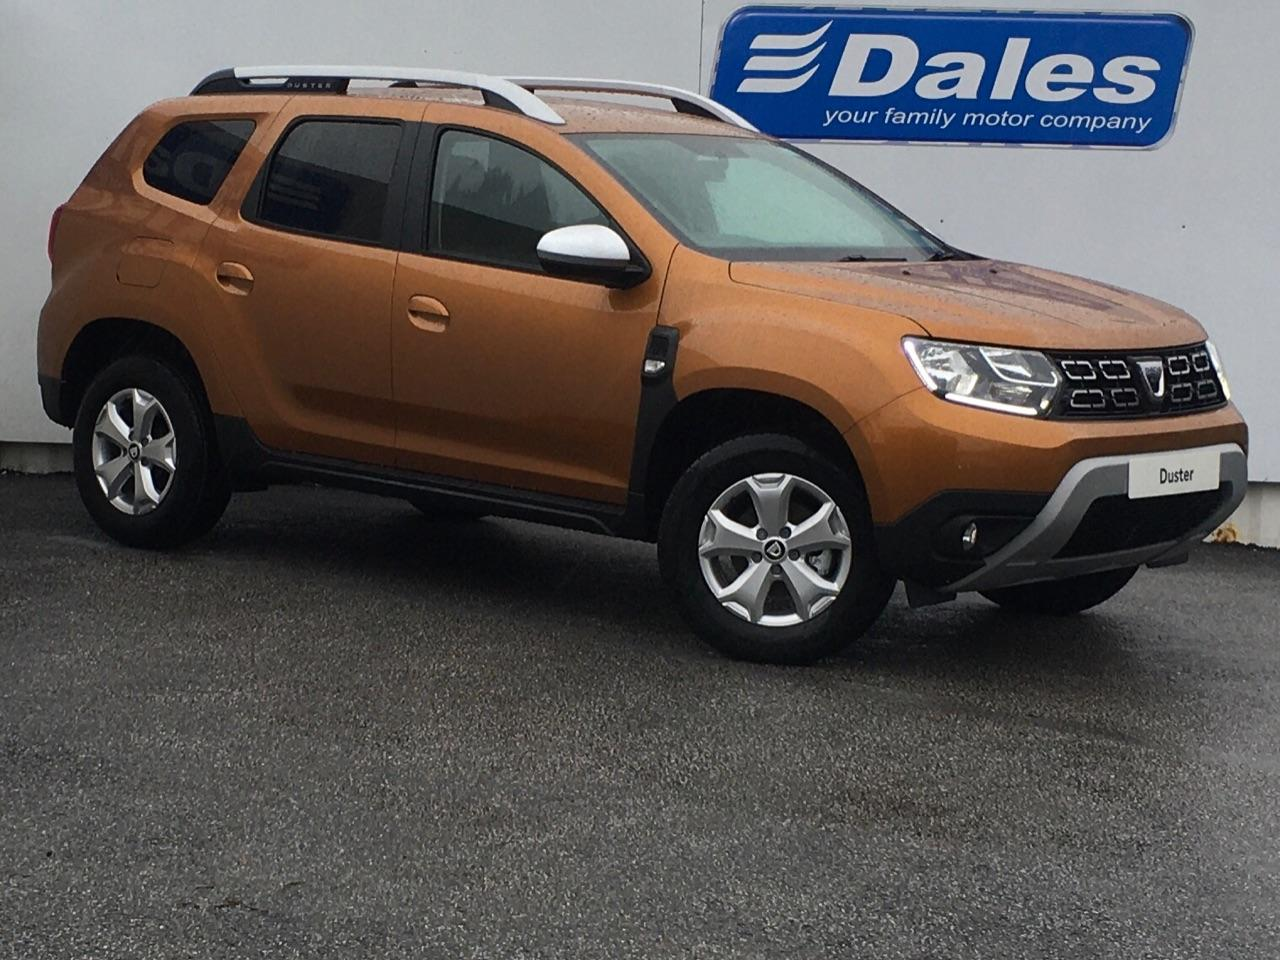 Dacia Duster 1.3 Comfort TCE 130 4X2 Hatchback Petrol Orange